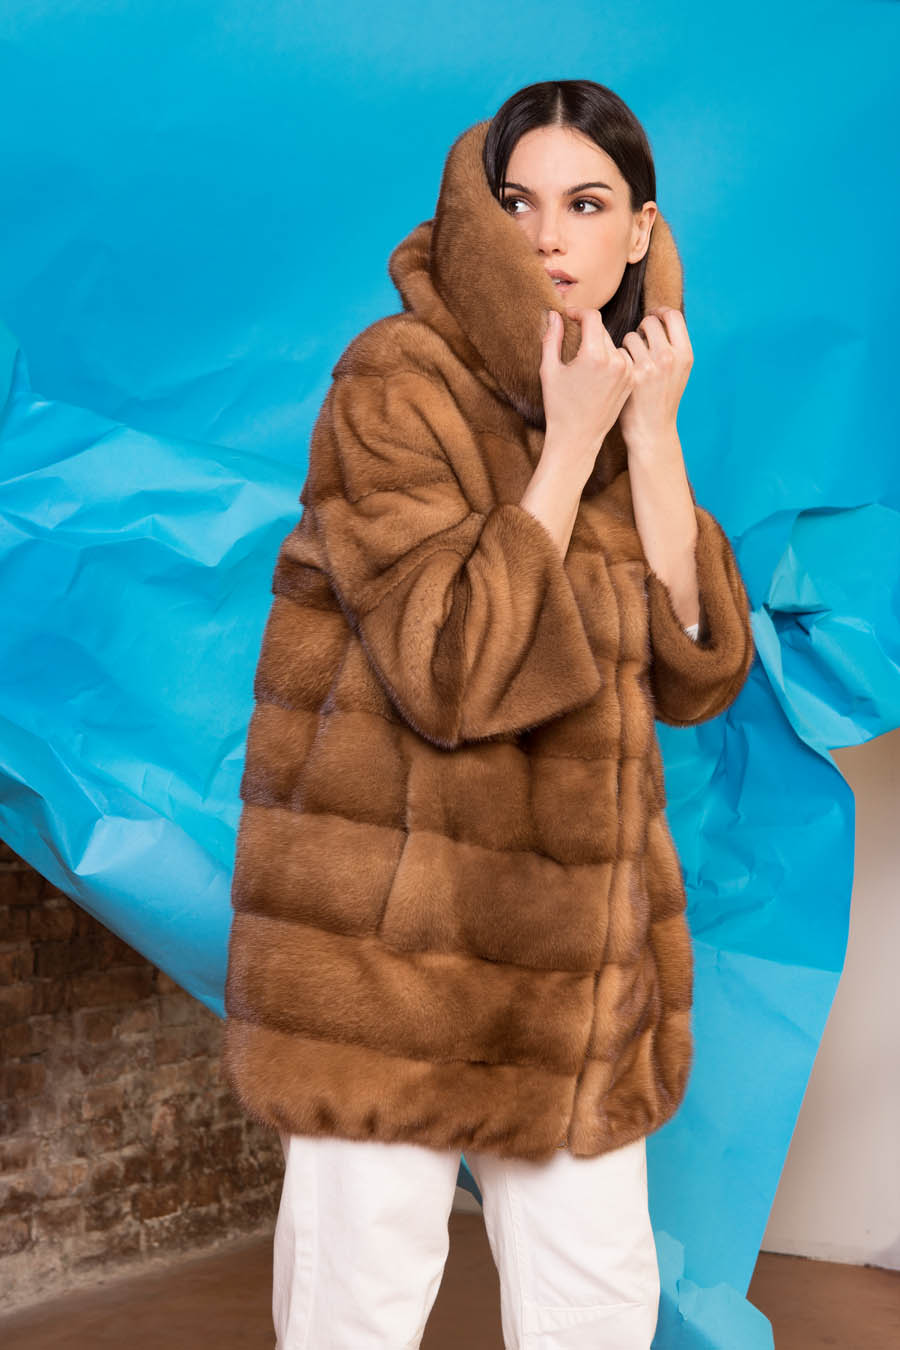 07 P1904V 95 01 giovi pelliccia fur brown - Fall Winter 2019-20